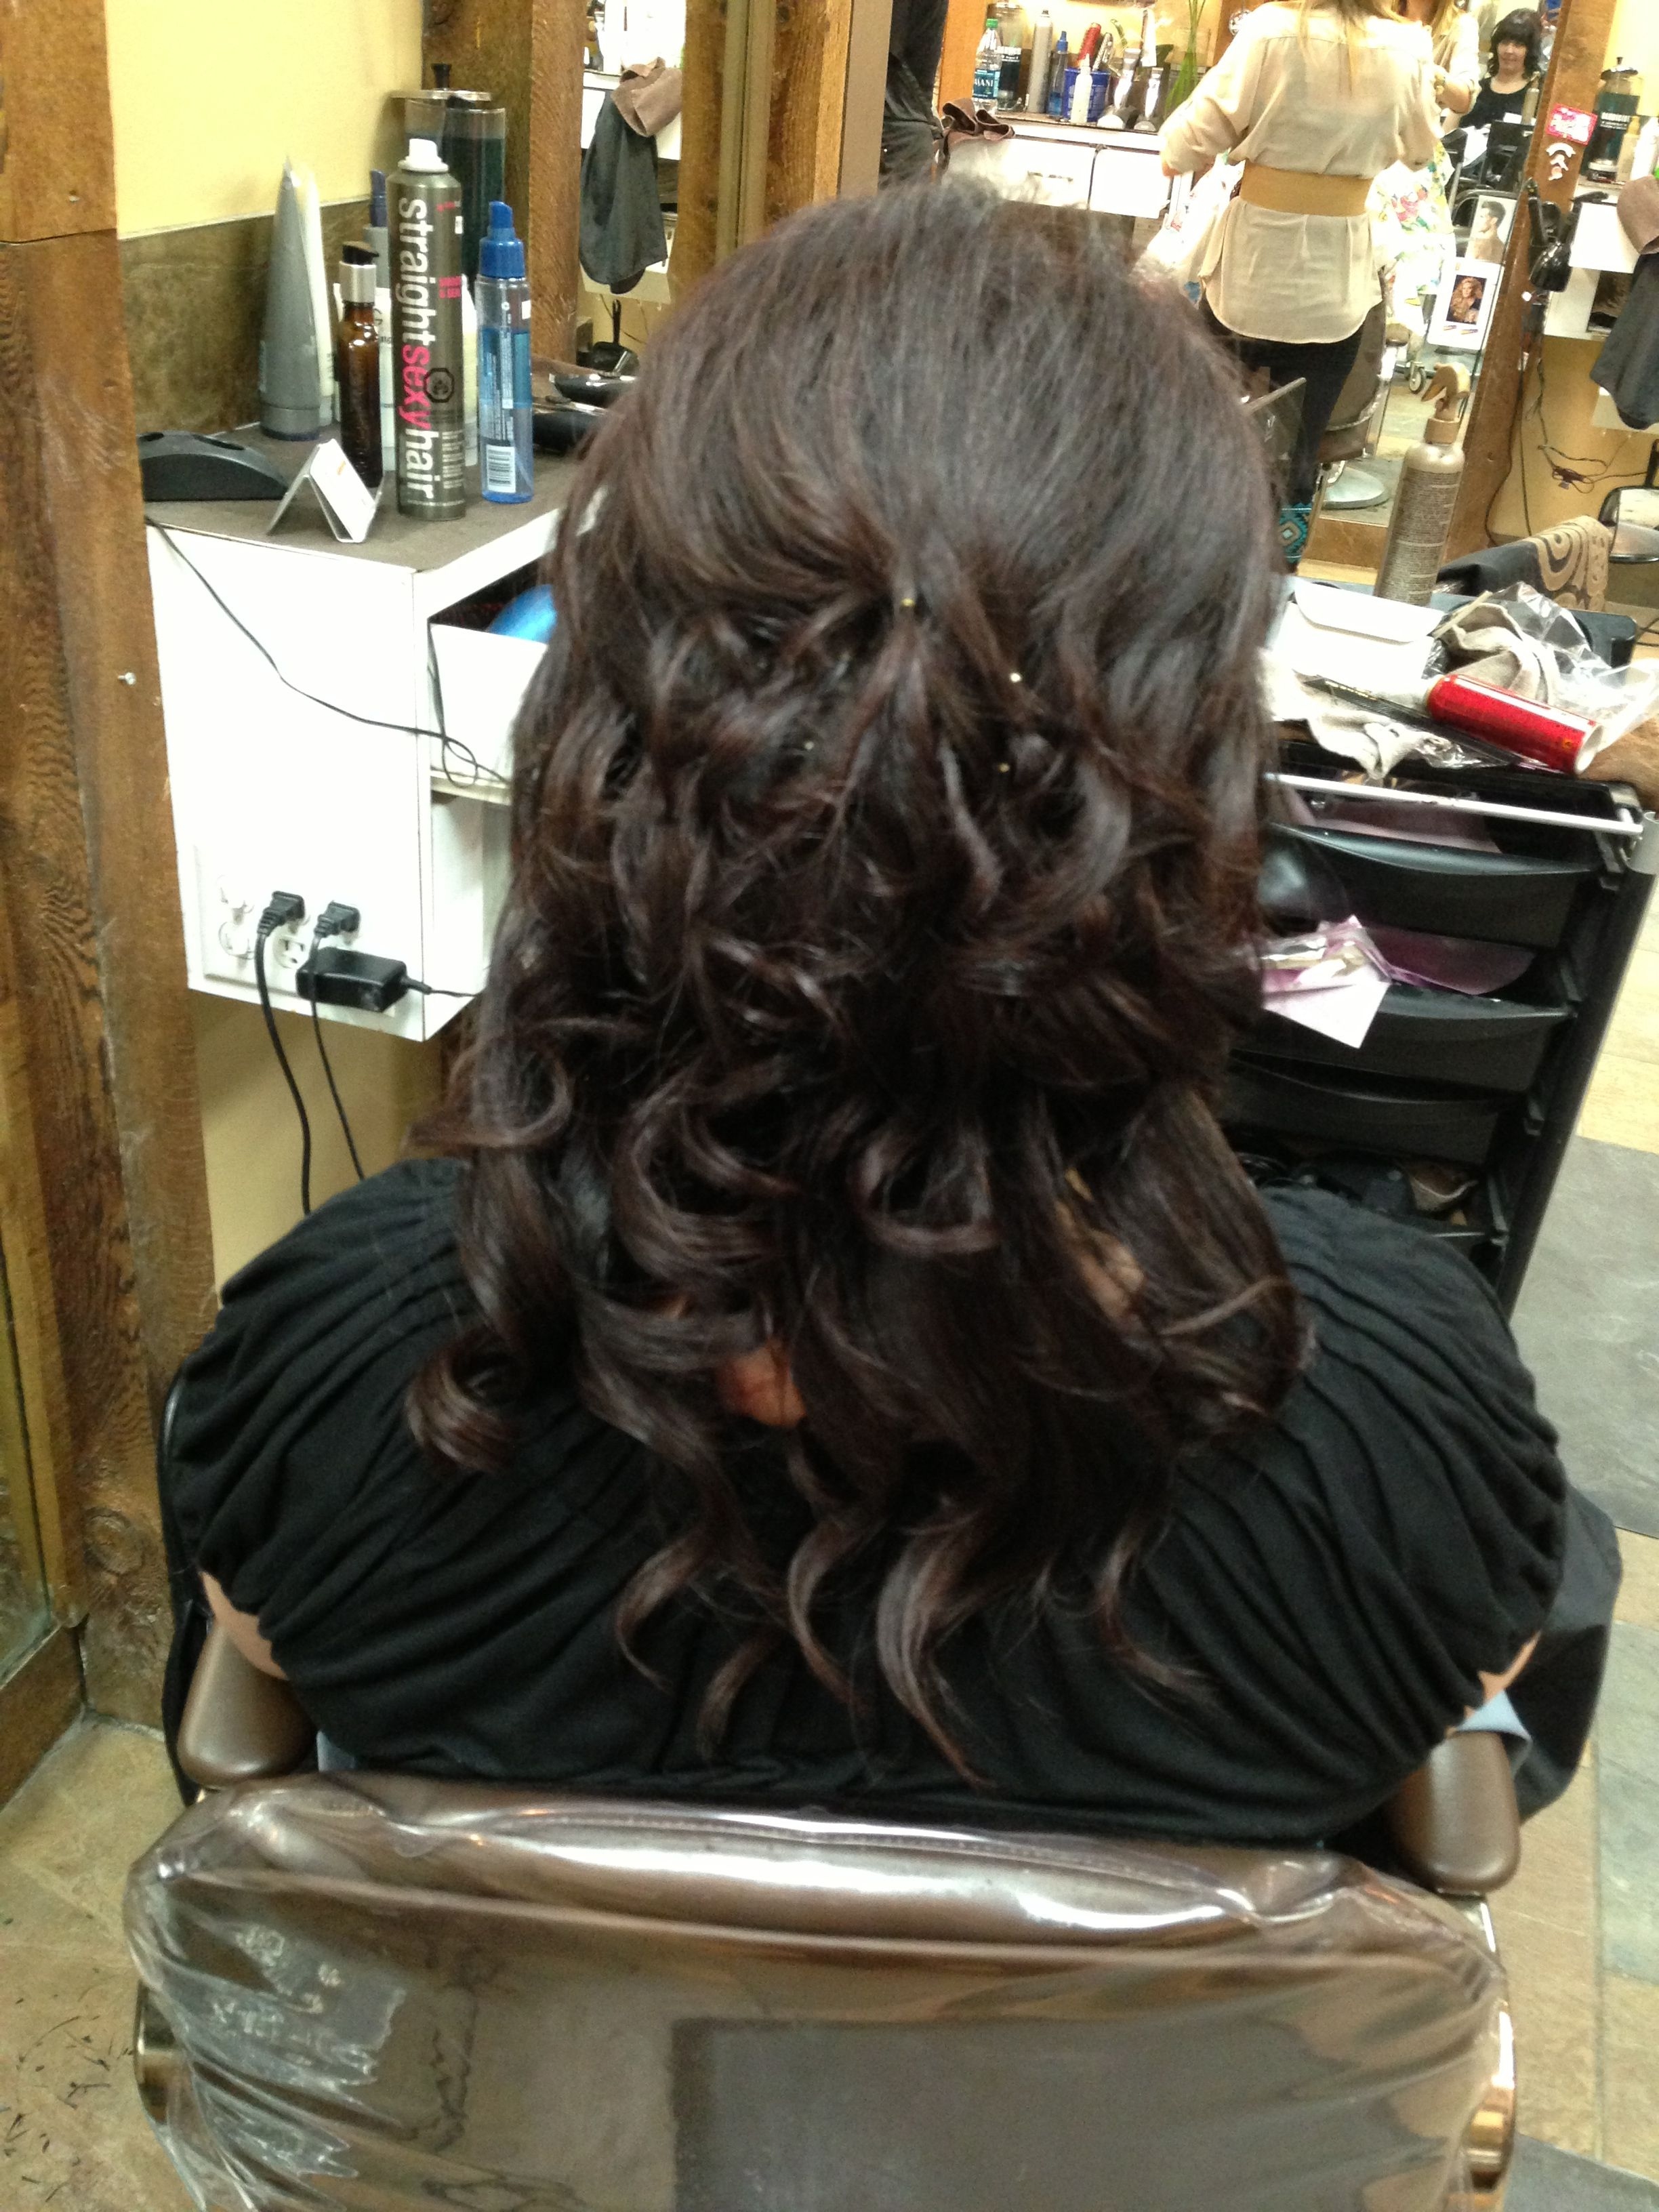 Half Up Half Down Wedding Hair Thanks To Brandon At The Hairstyle Inn For The Beautiful St Hair Styles Wedding Hairstyles Half Up Half Down Wedding Hairstyles